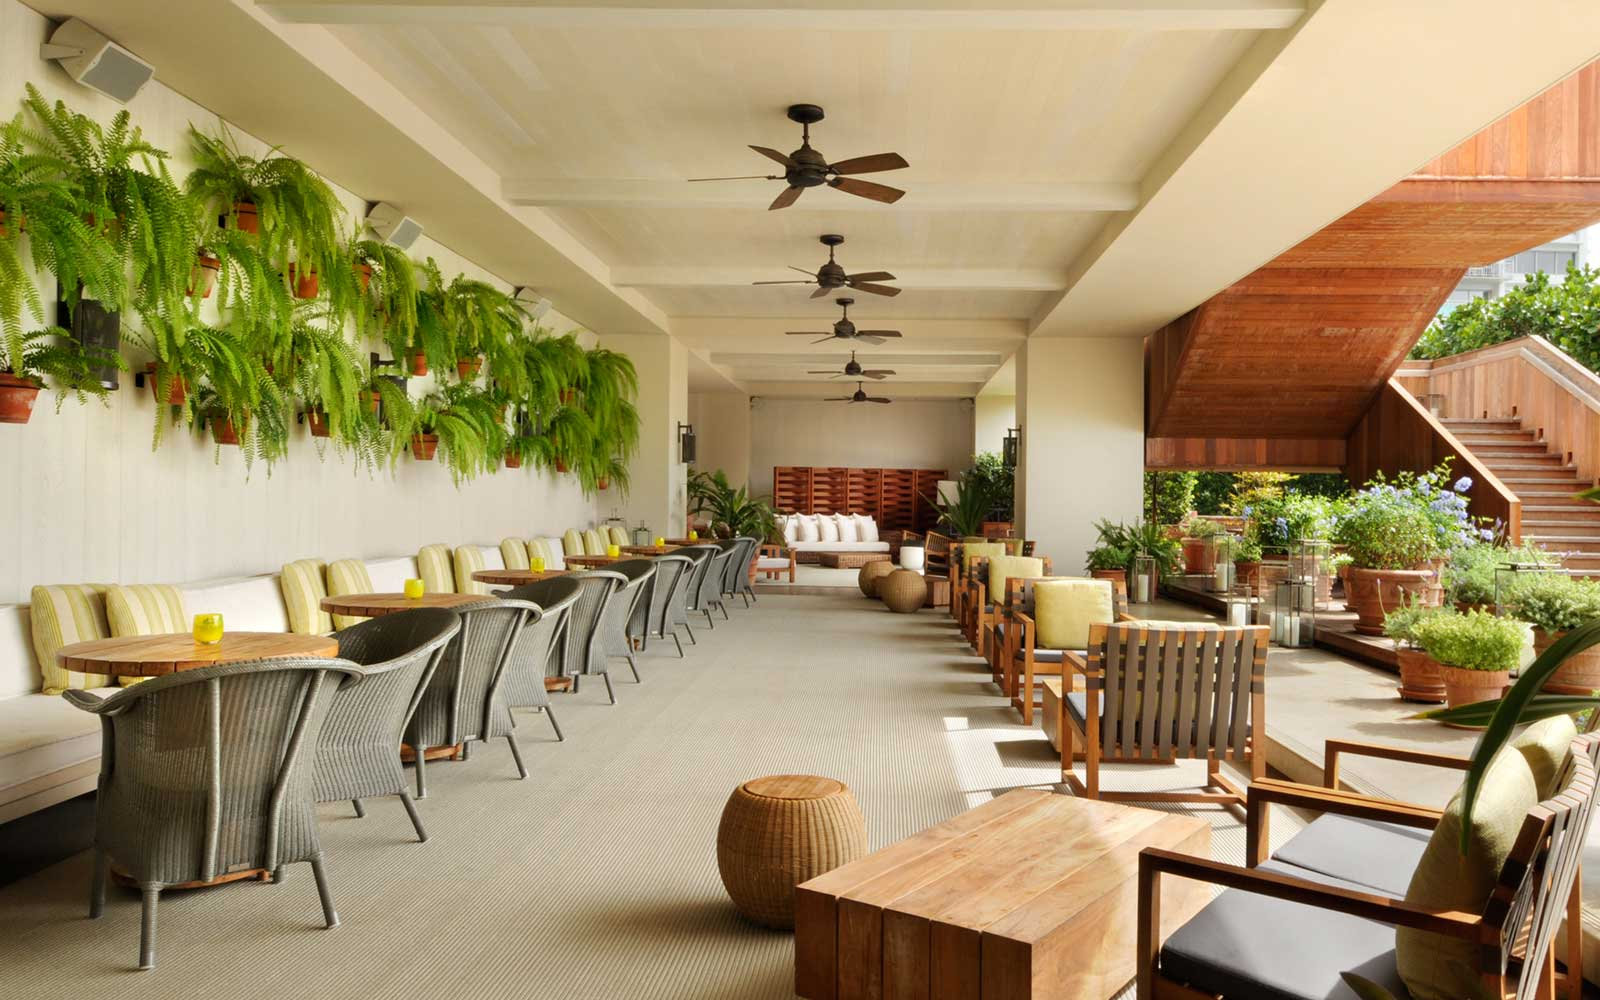 Get 31% off a Two-night Stay at the Modern Honolulu in Hawaii